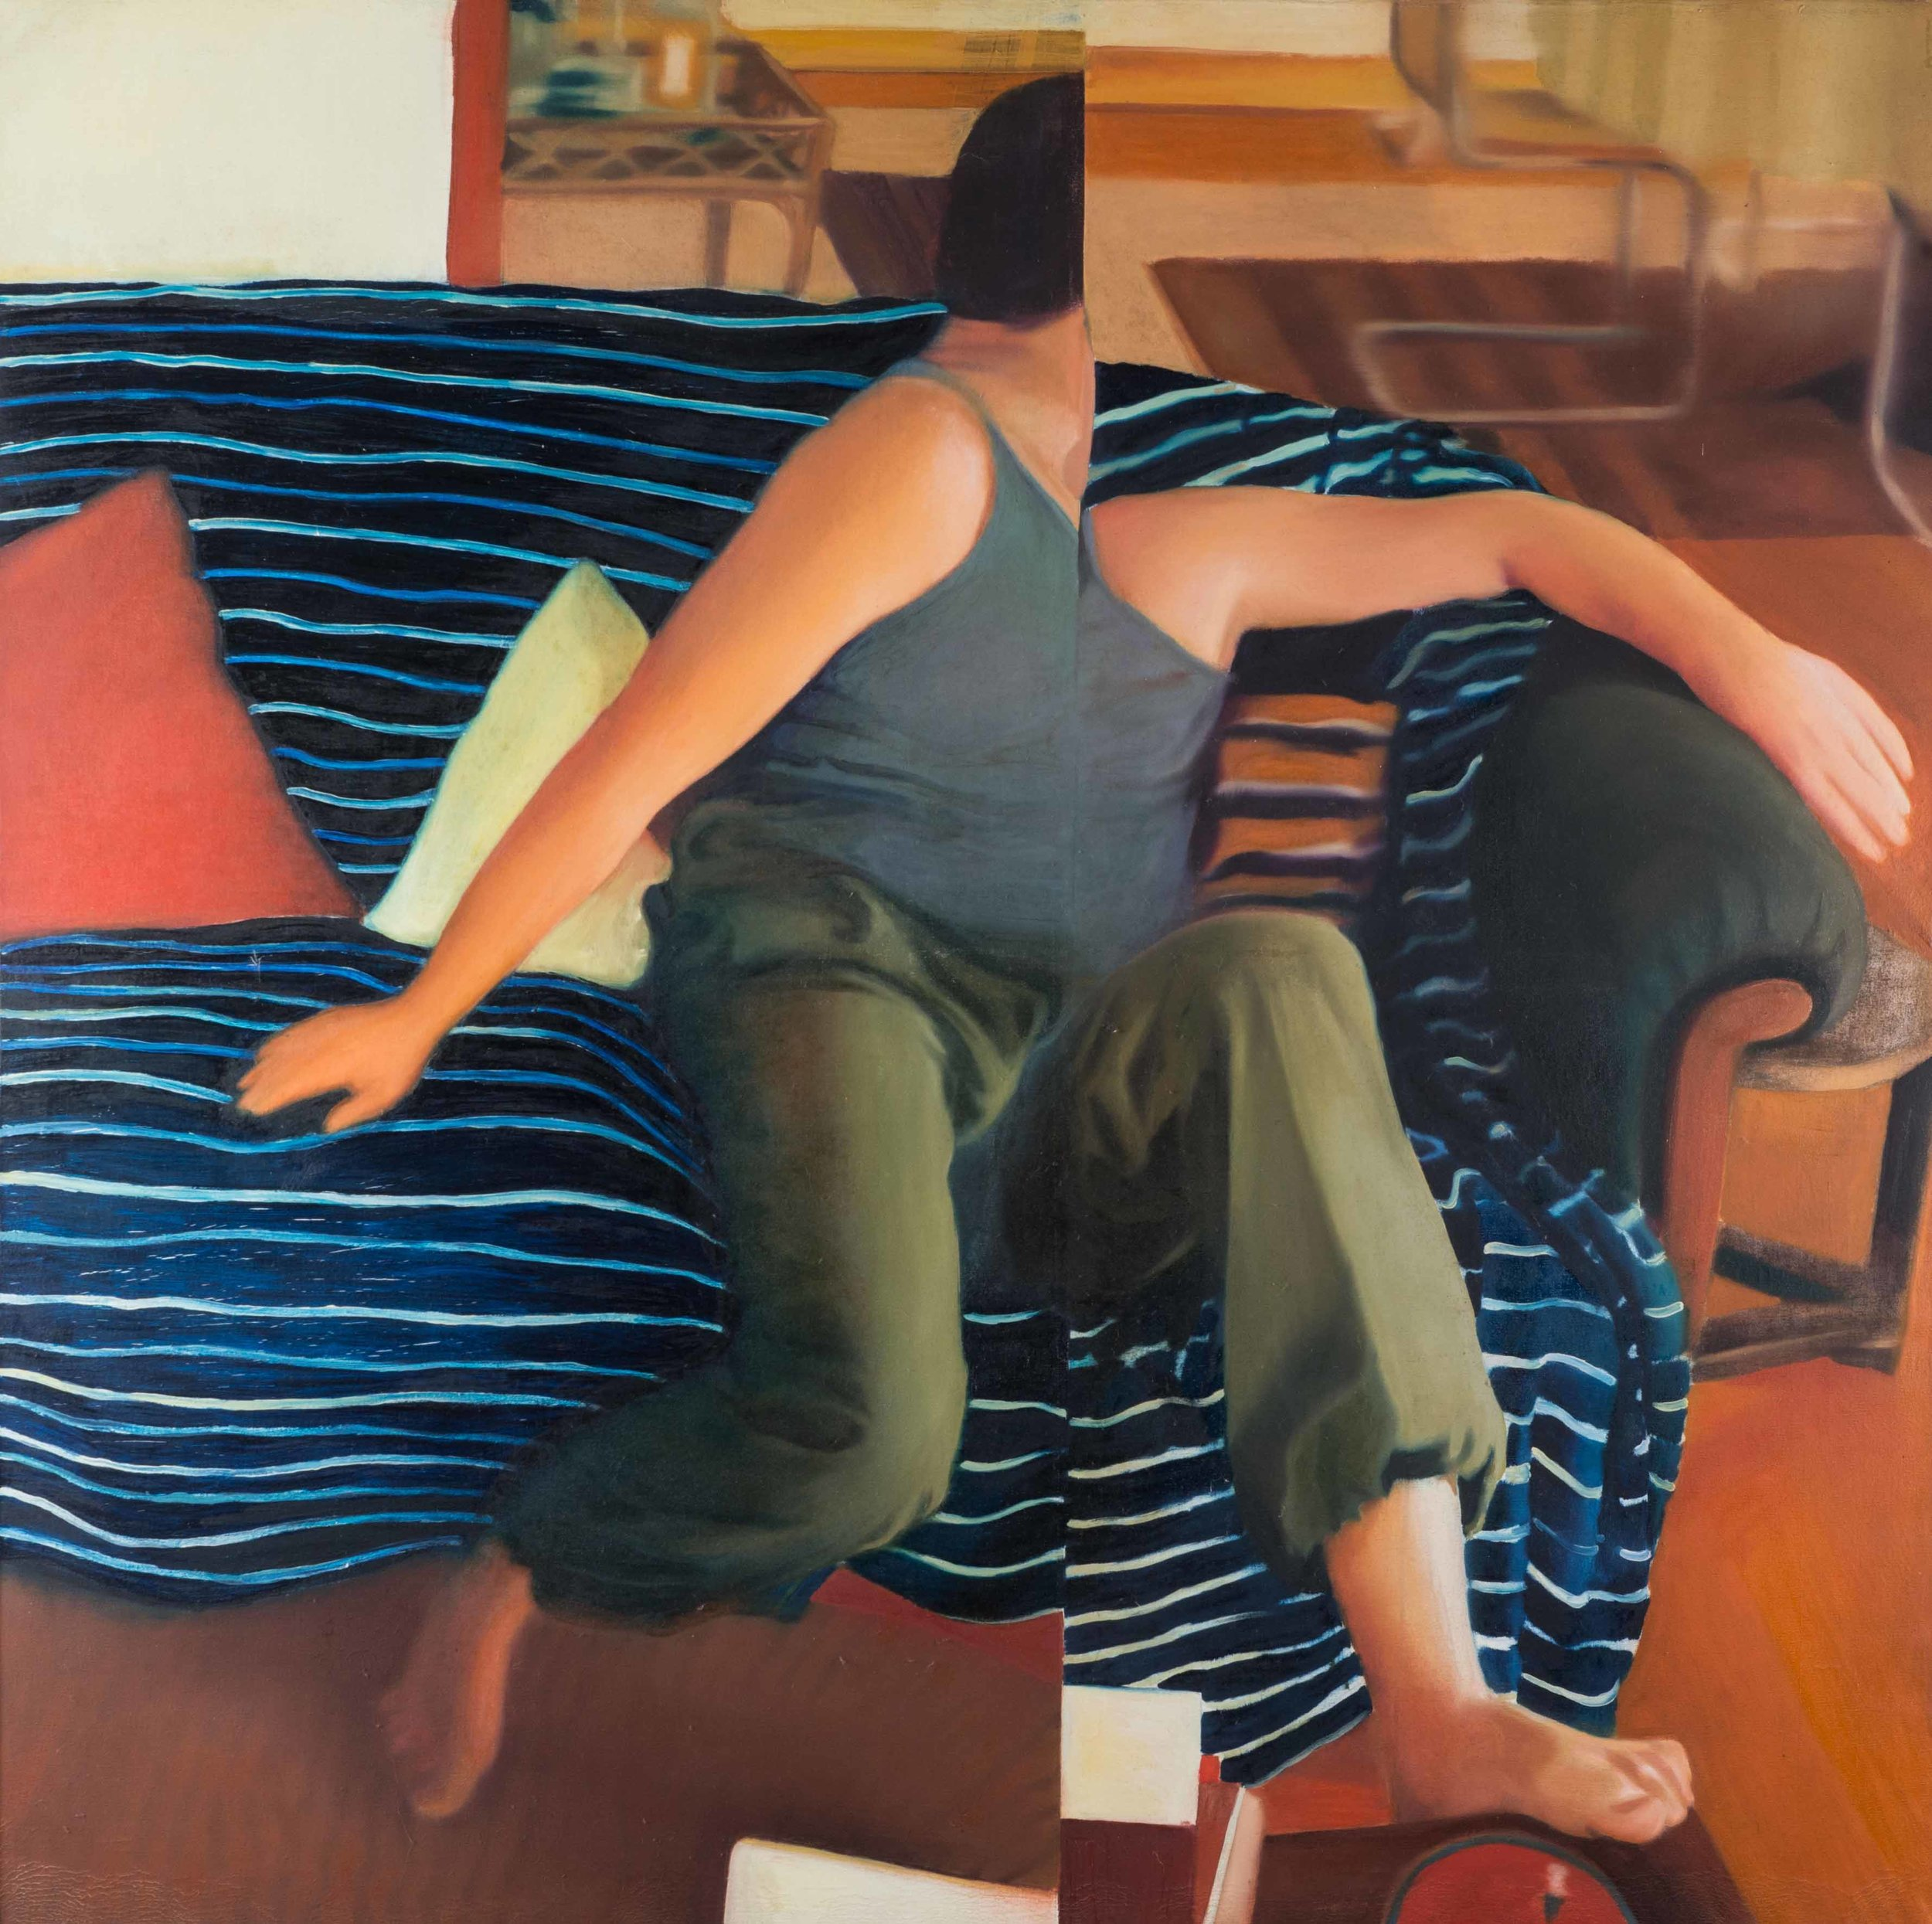 Half brother , 2001, oil on canvas, 110 x 140cm. Private collection, Brazil